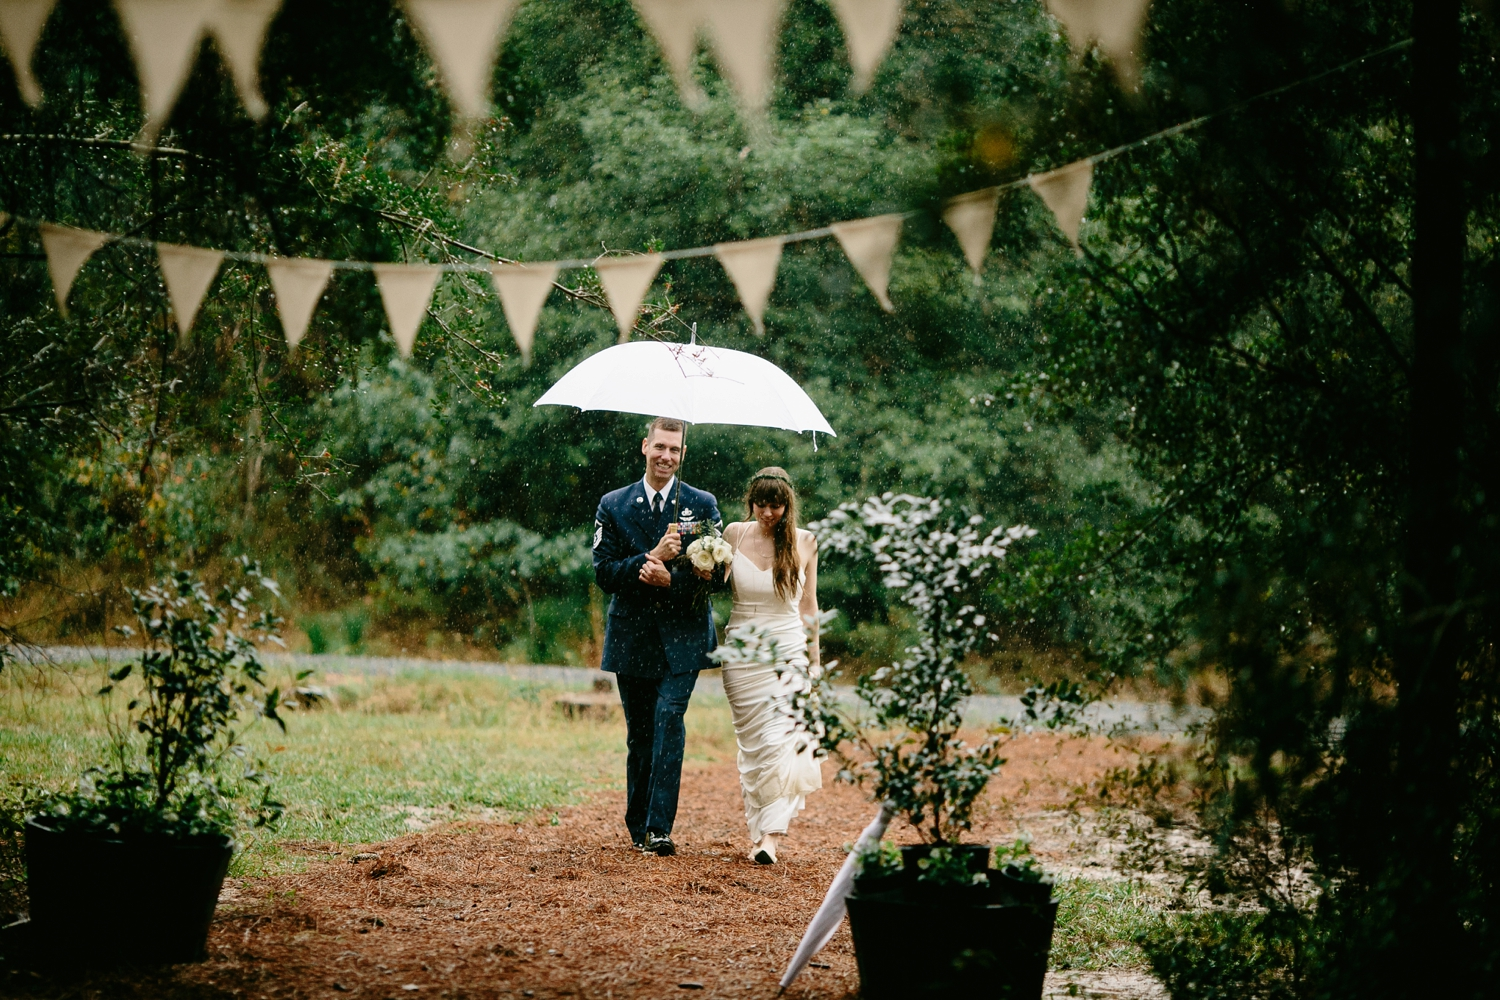 rainy-wedding-pictures-064